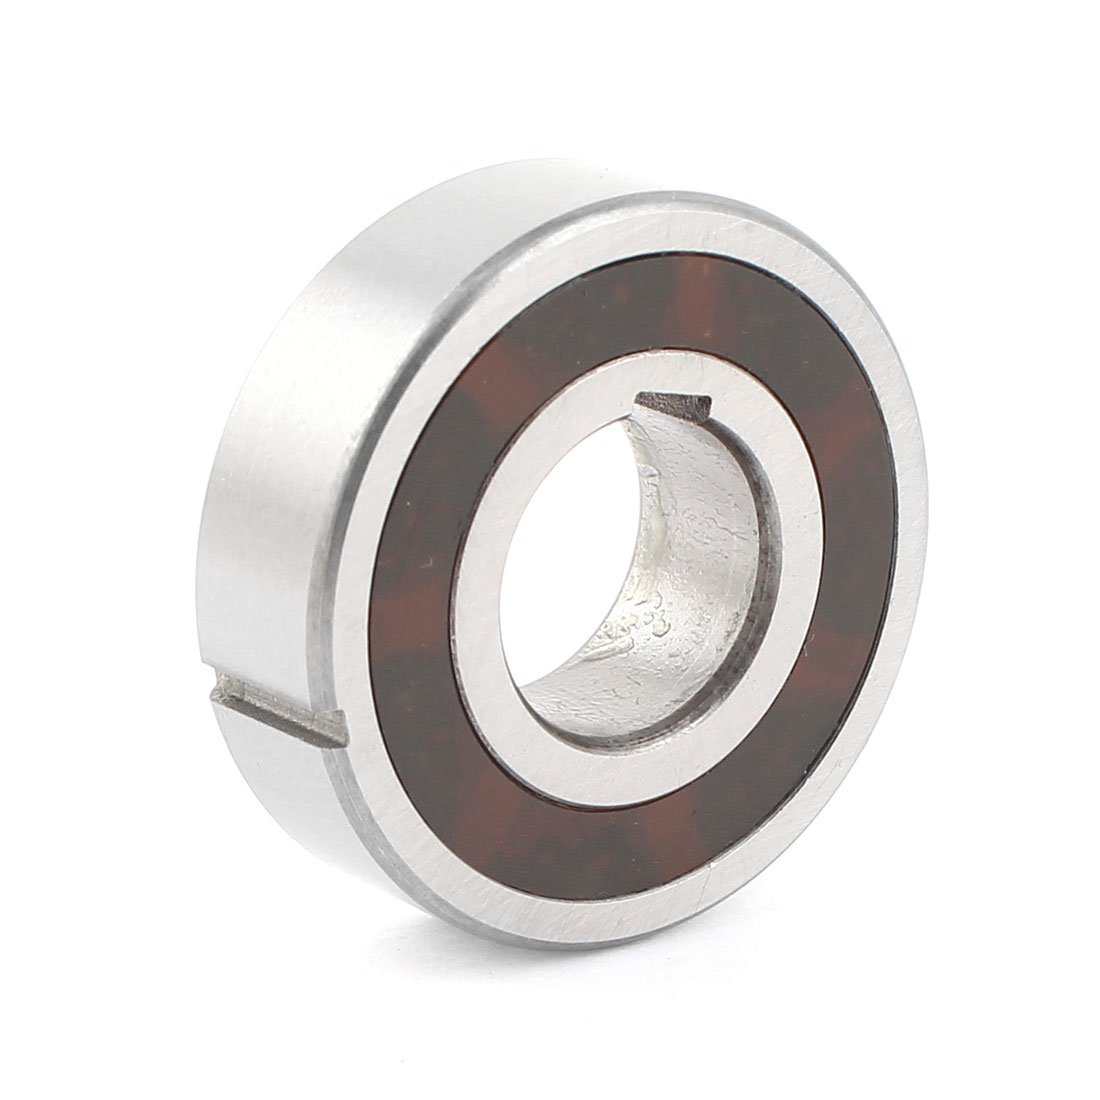 0.67 Steel Uxcell a14120200ux0241 CSK17PP One Way Clutch Dual Keyway Bearing 17 x 40 x 12mm